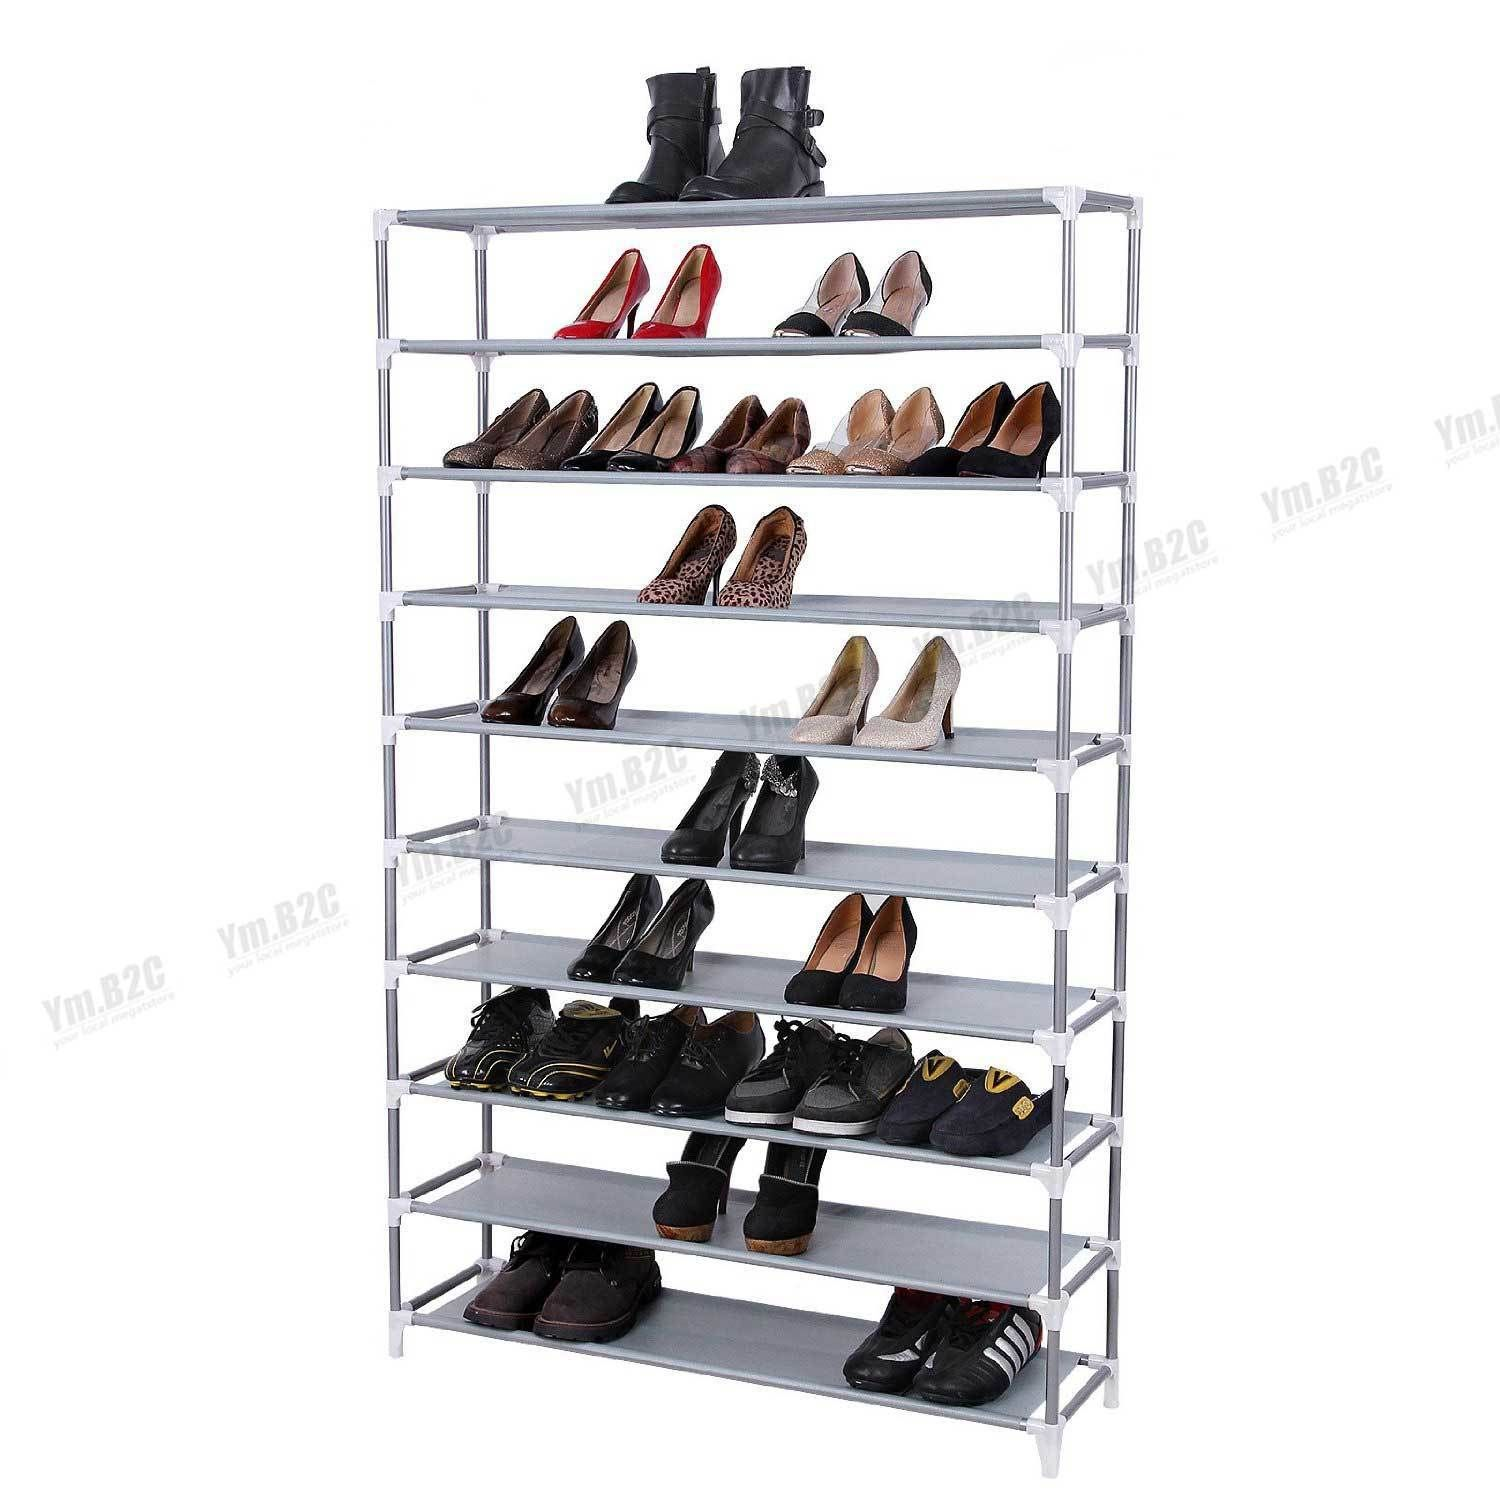 10 Tiers Shoe Rack Shoe Storage Organizer Cabinet Tower with Non-woven